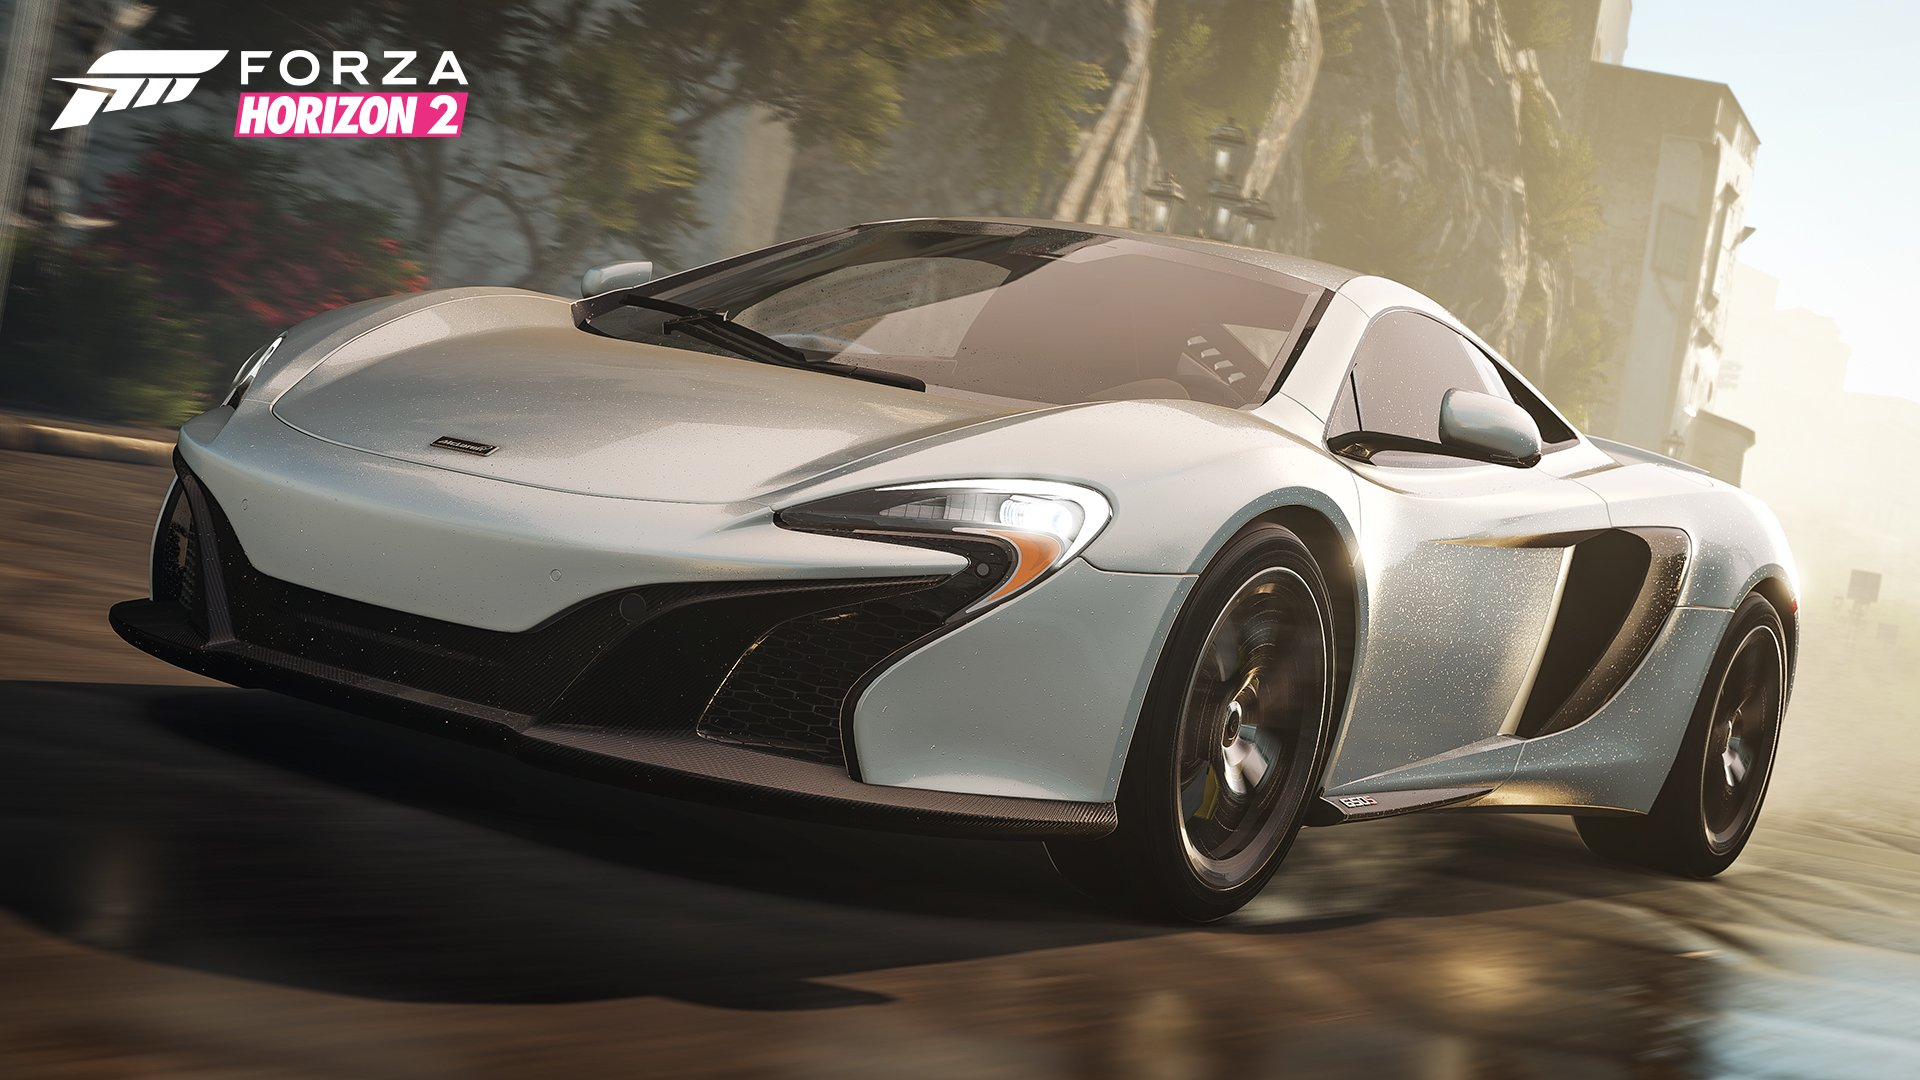 Forza Horizon 2 NAPA Chassis Car Pack Available - Inside Sim Racing